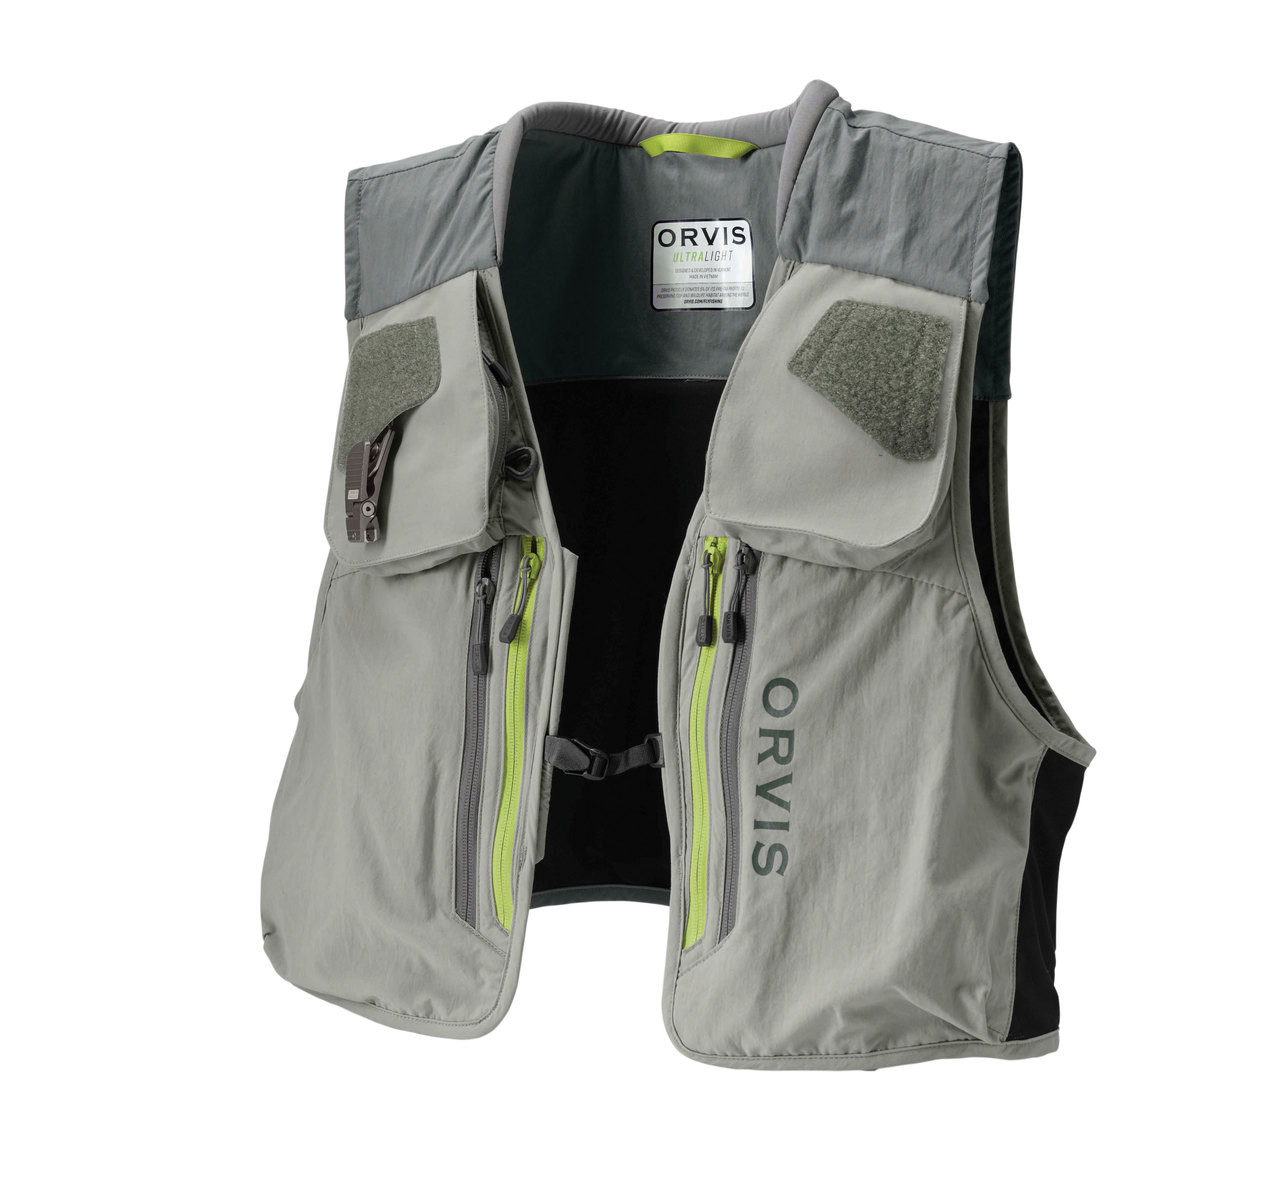 a4041745222 Orvis Ultralight Fly Fishing Vest - Swanson s General Store